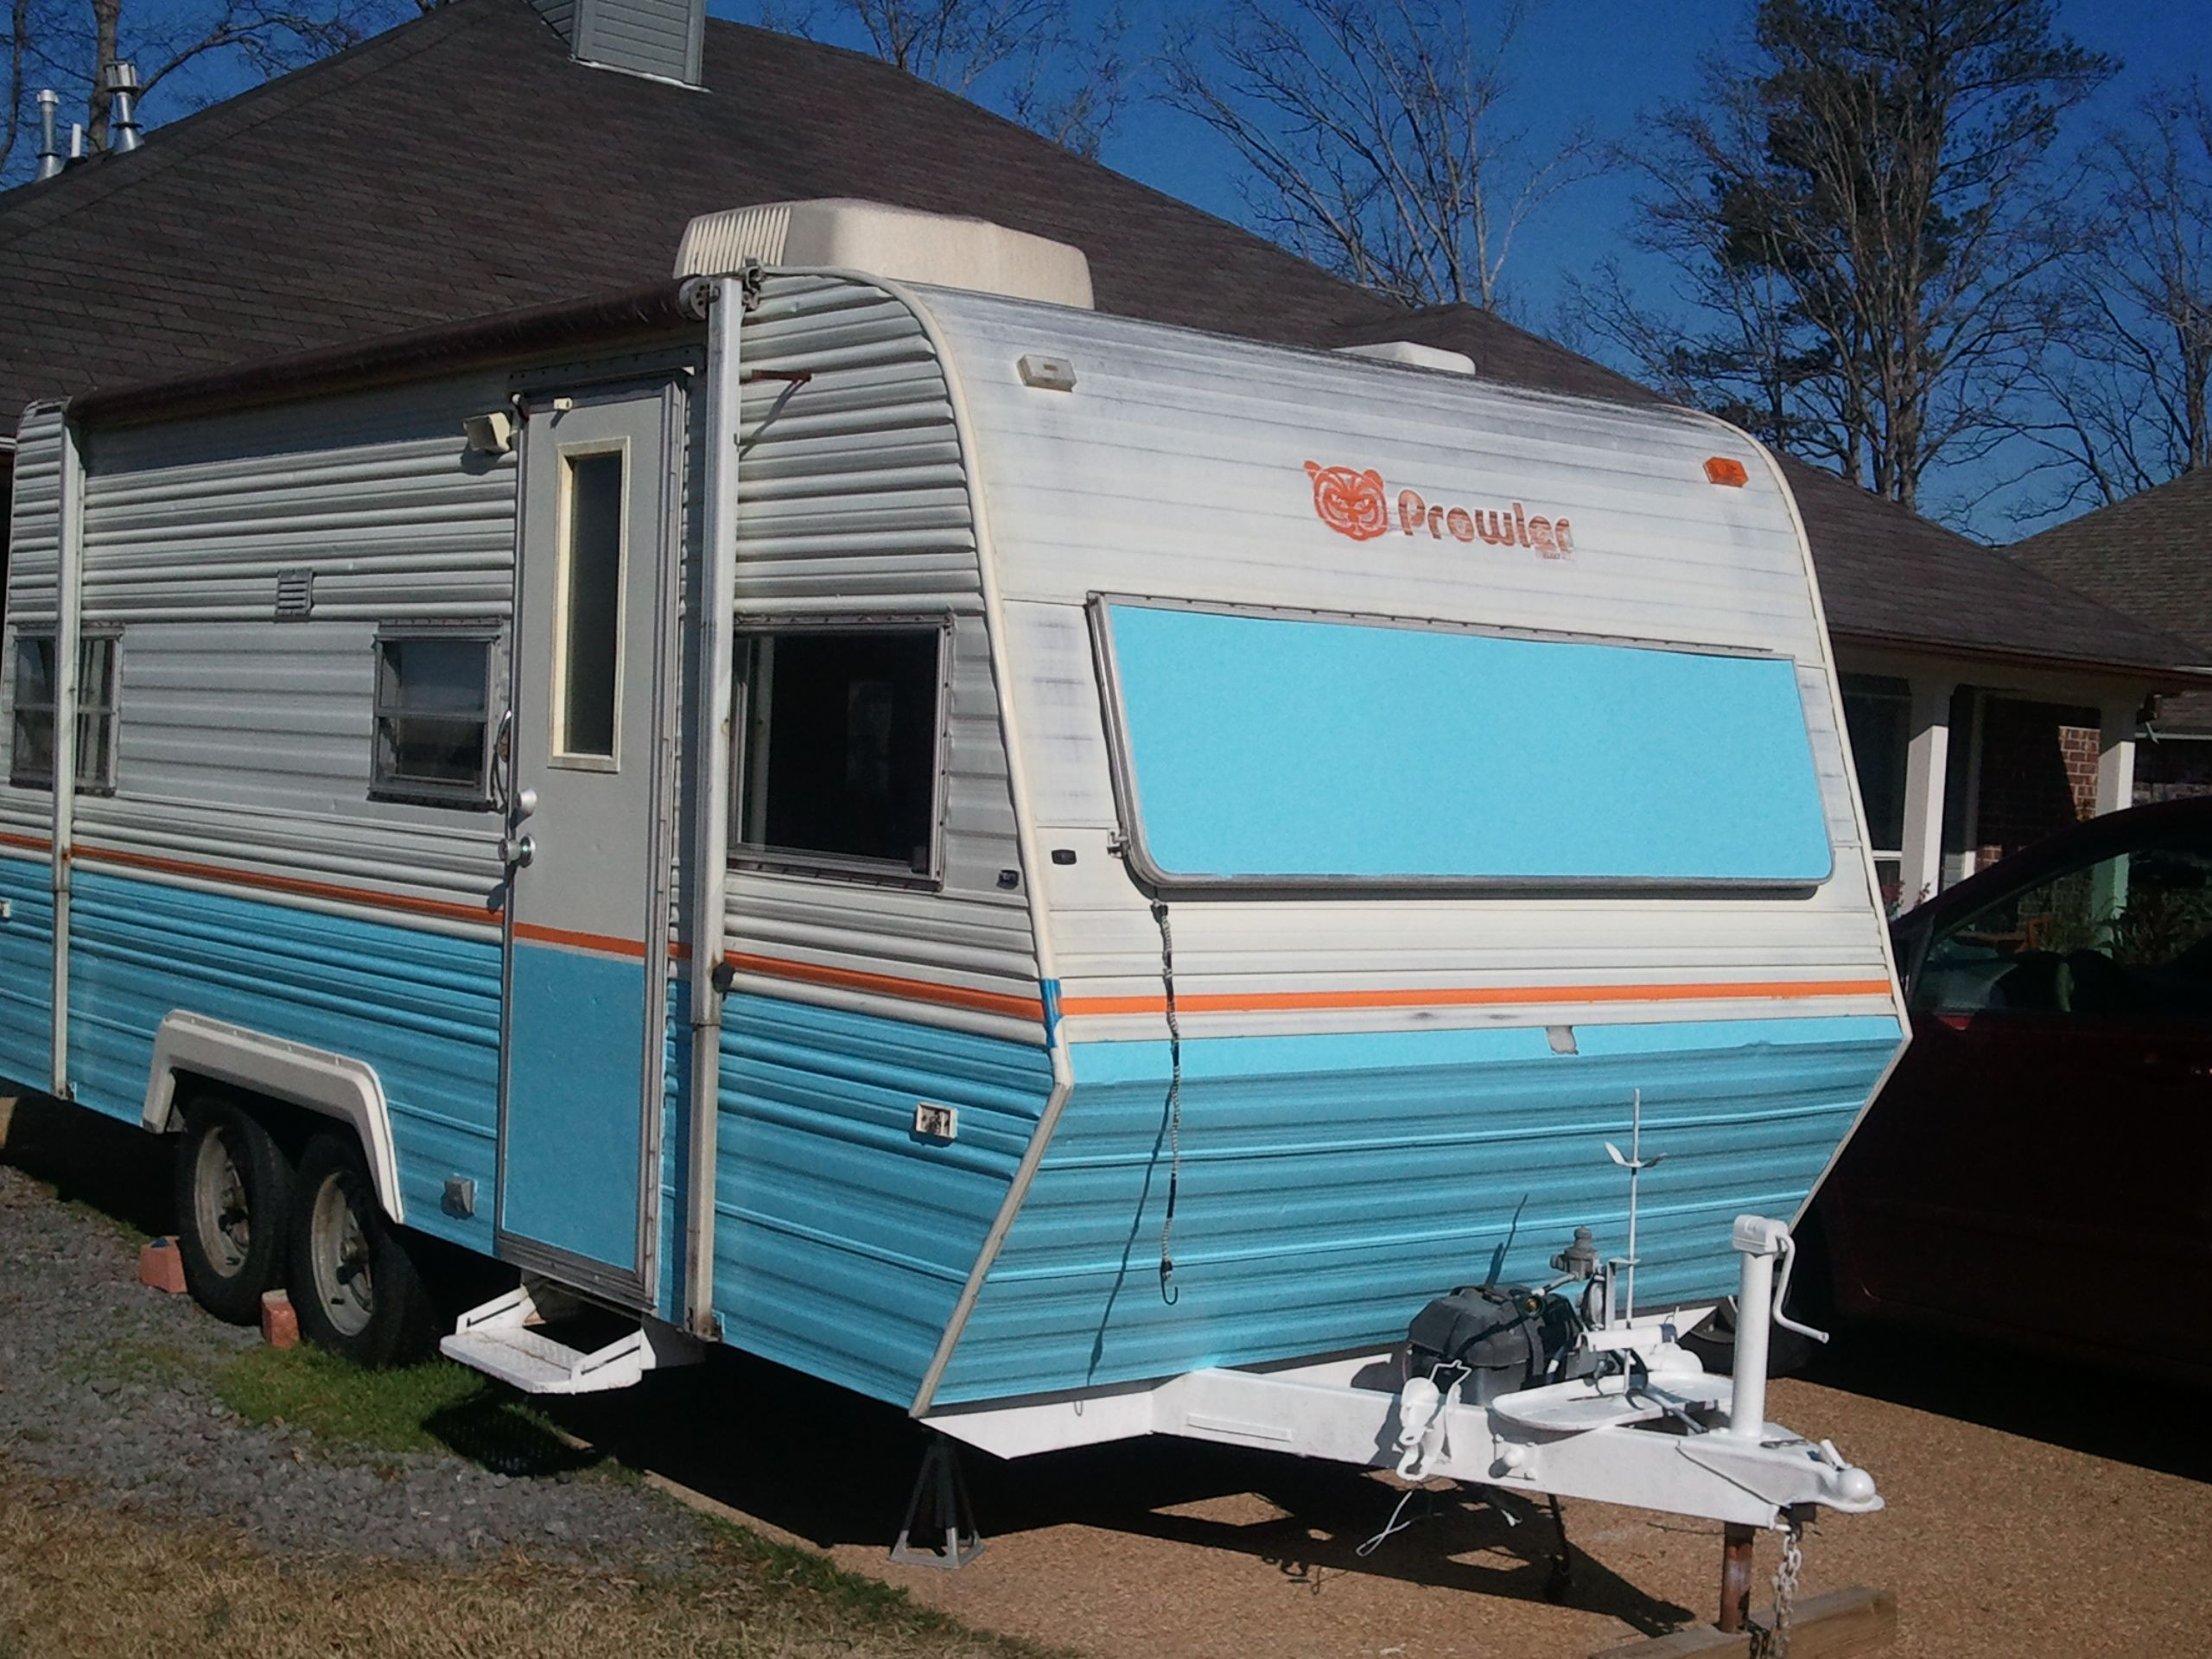 ... and satisfying characteristics of having a vintage trailer is  completing the required repair or restoration projects your RV should look  it's best.